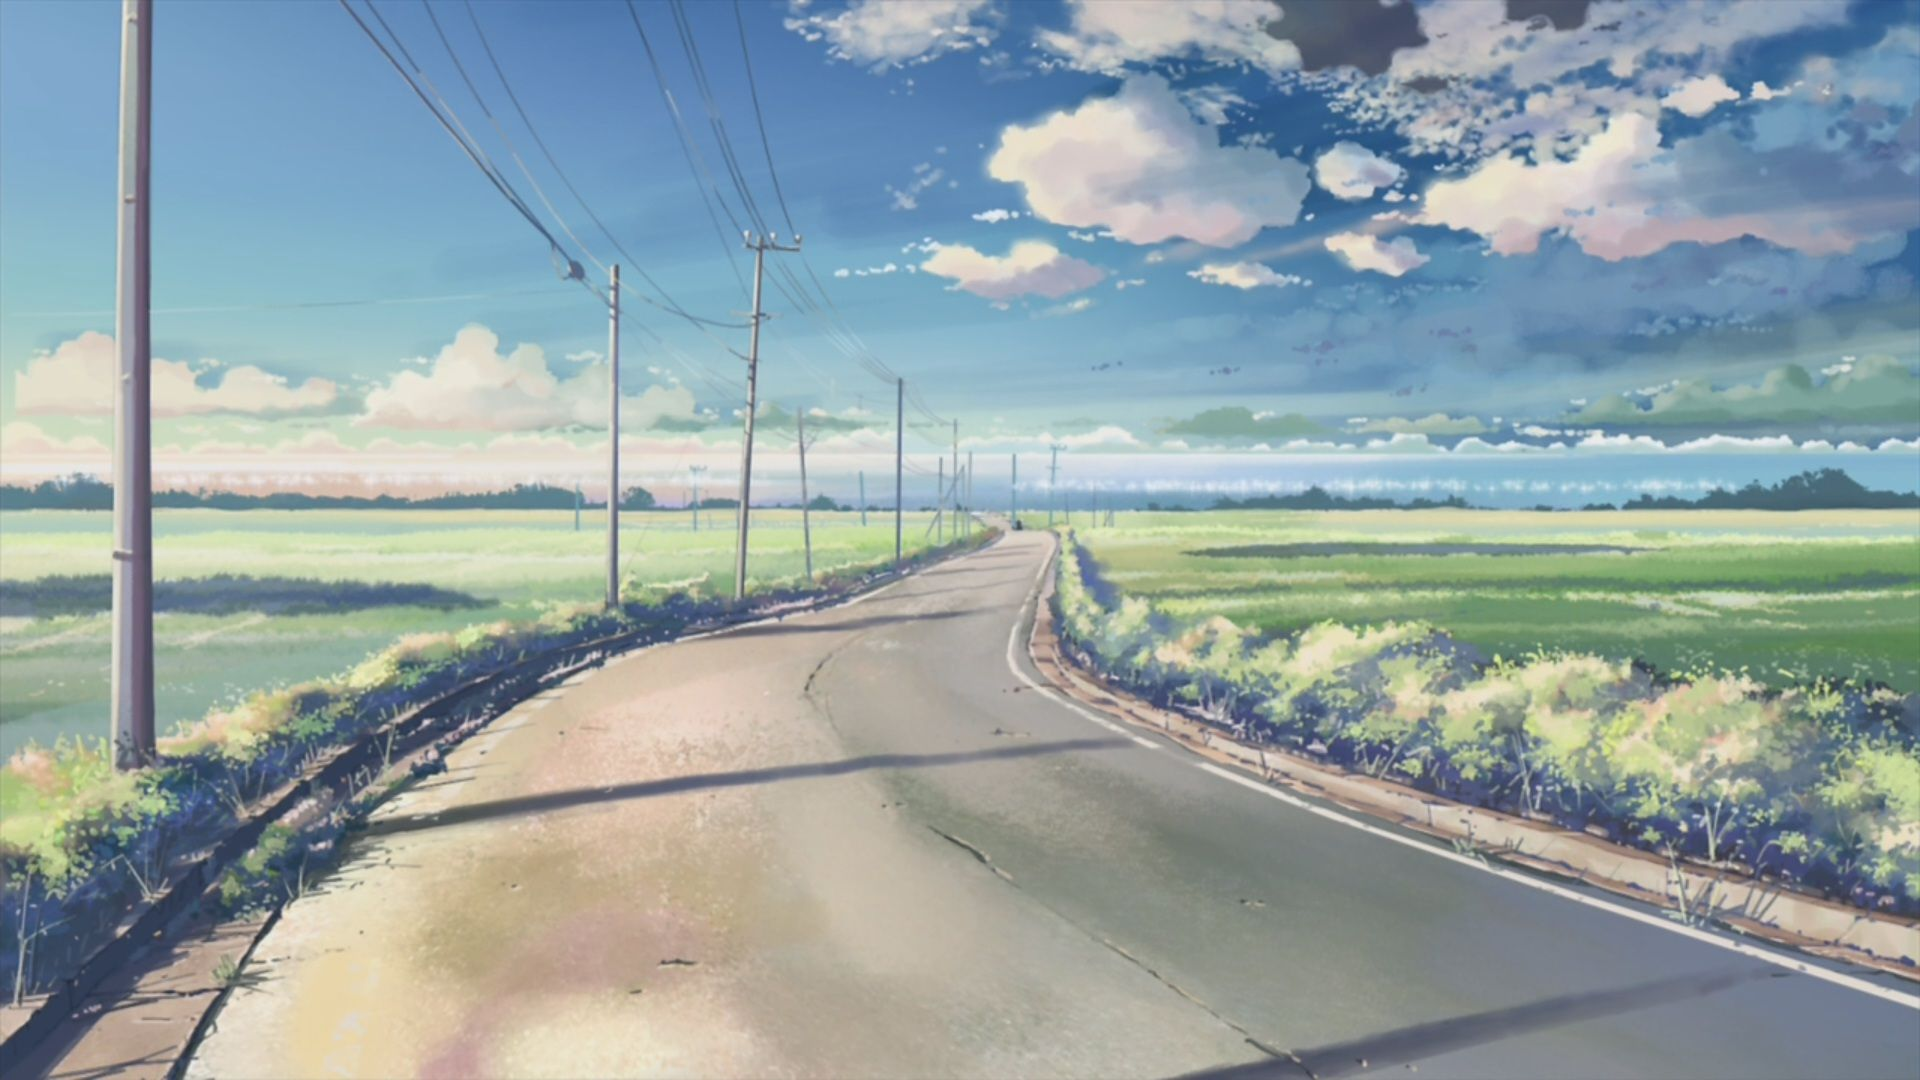 Anime Scenery Anime Scenery Anime Background Anime Backgrounds Wallpapers